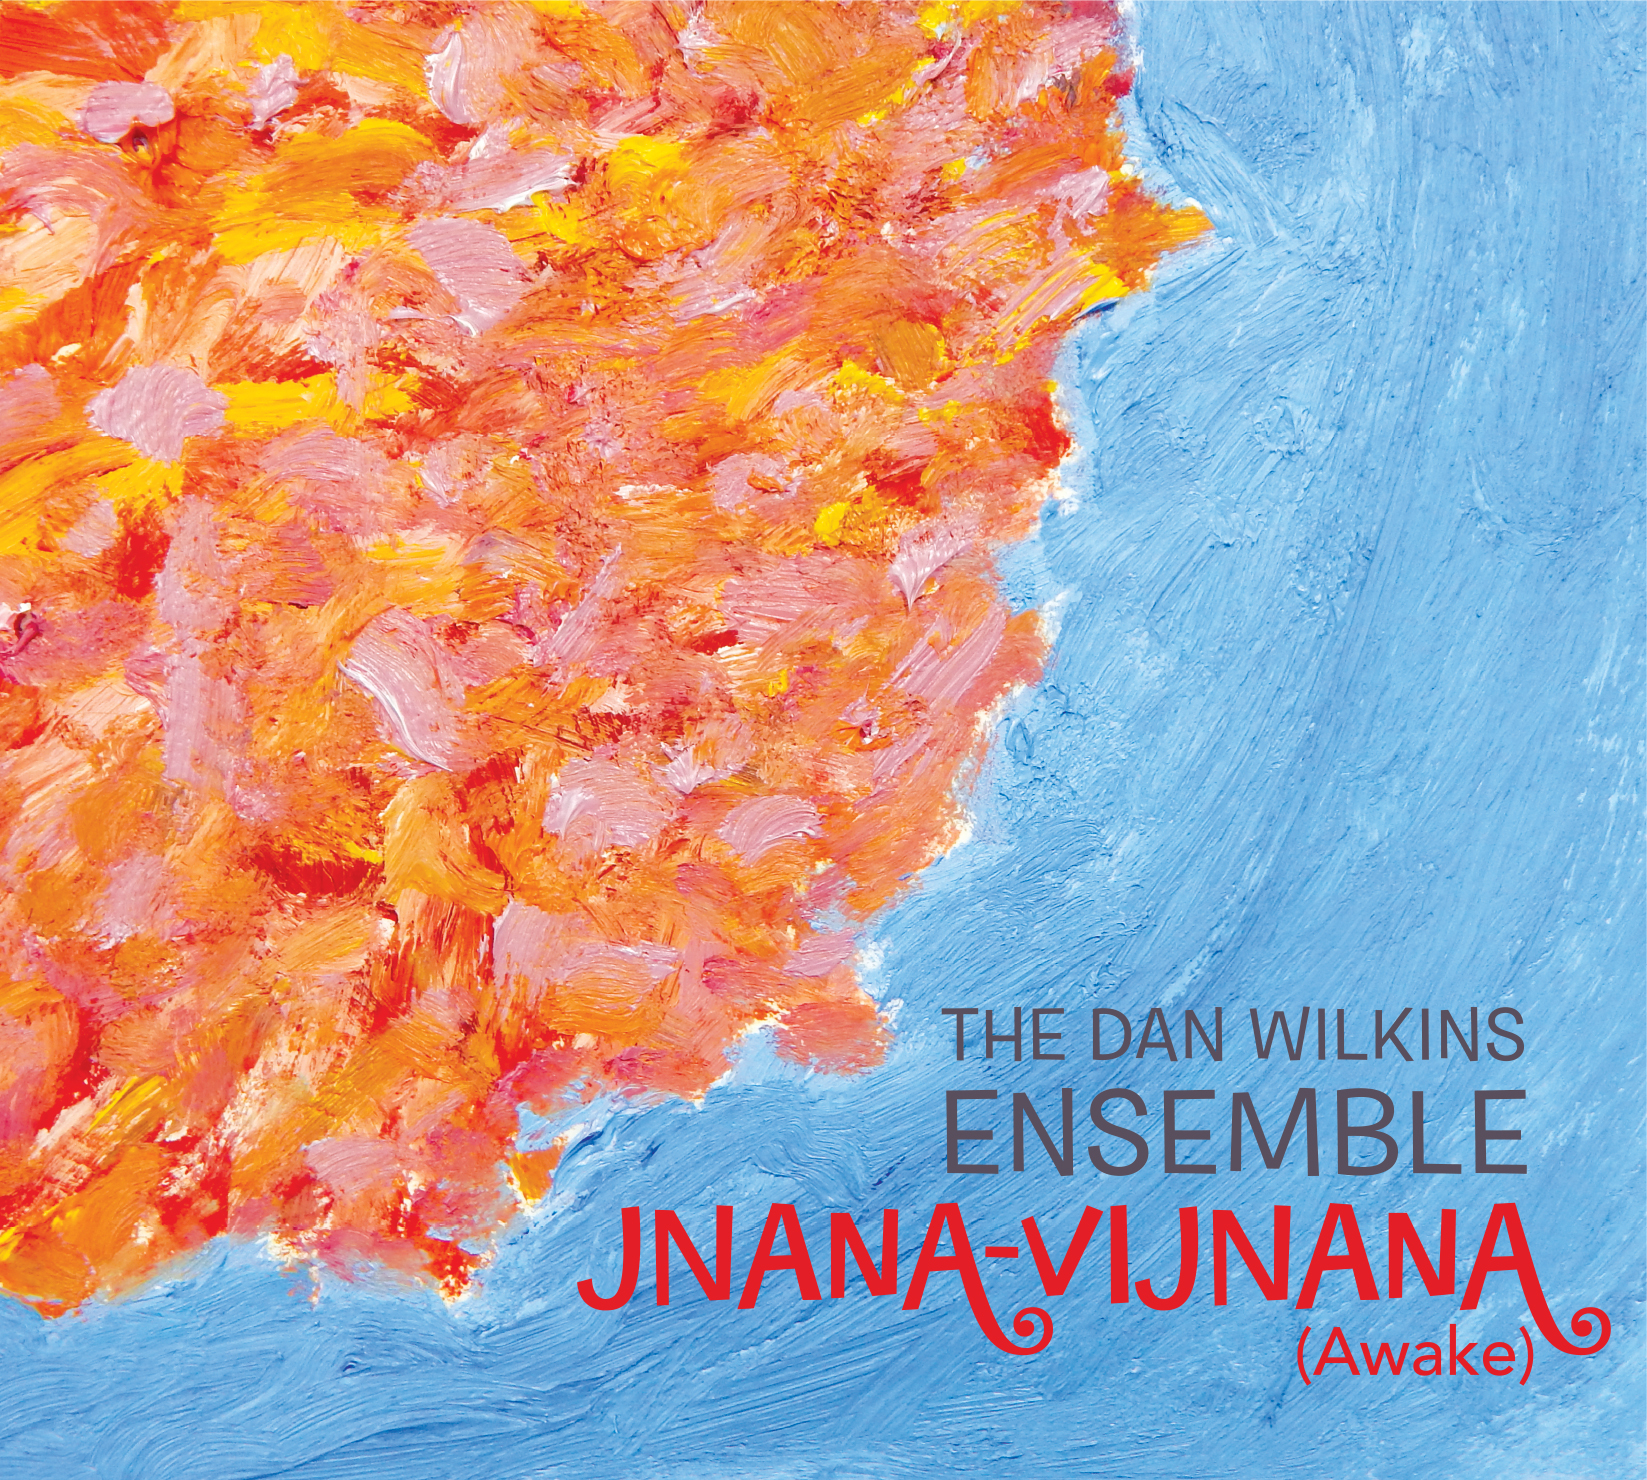 Four star review for Dan Wilkins Ensemble 'Jnana-Vijnana (Awake)' on All About Jazz